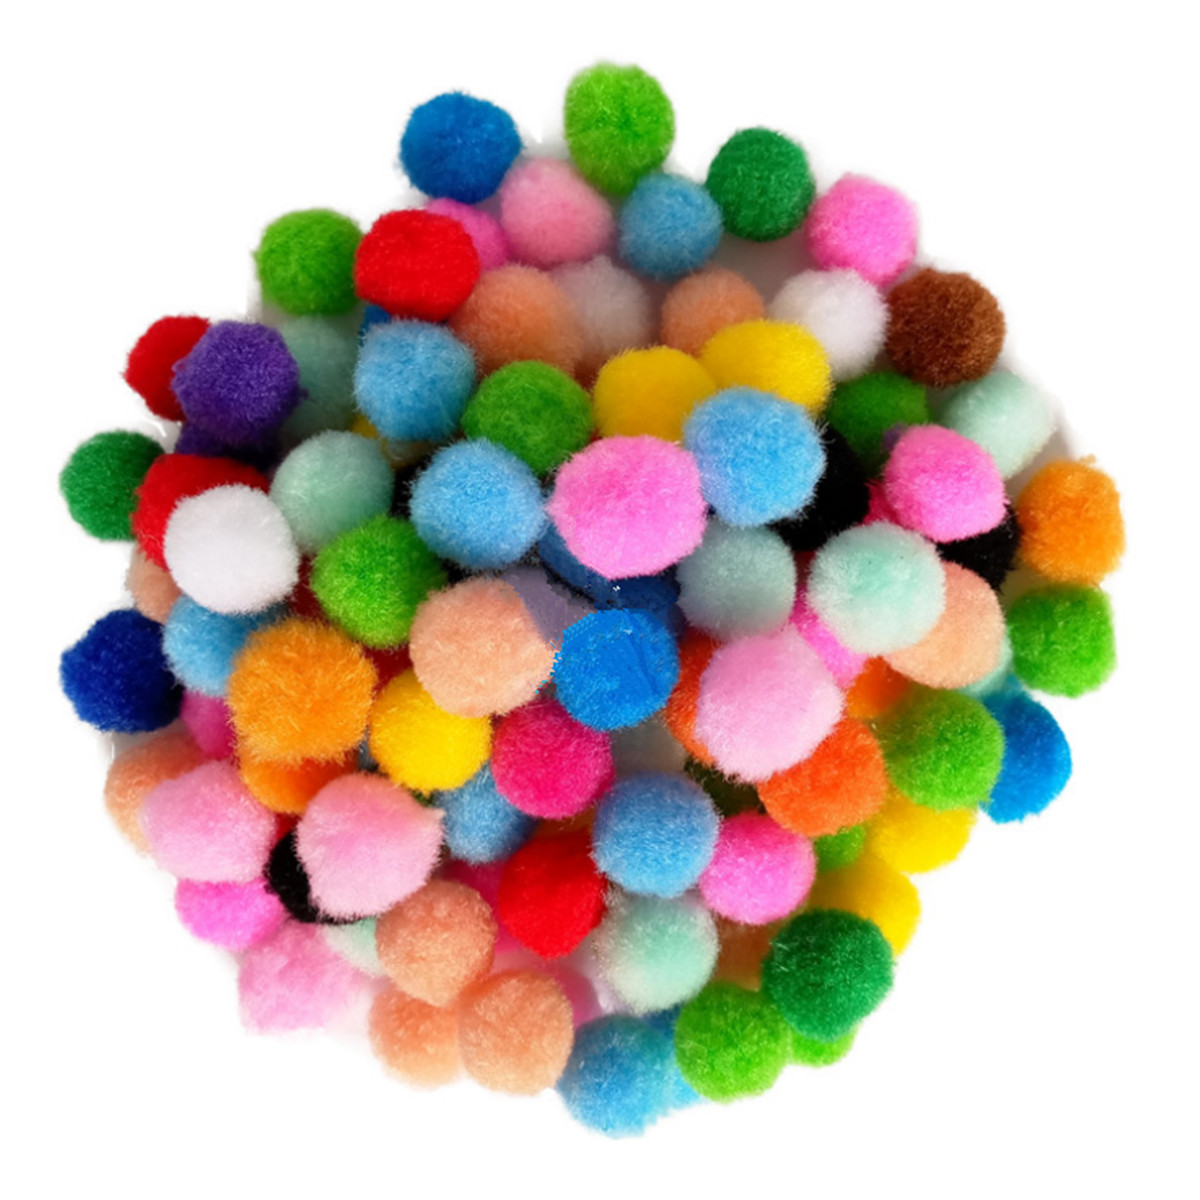 2000Pcs 1cm Pom Poms Multicolor Pompoms Fuzzy Pom Poms Balls for Crafts Making Hobby Supplies Arts DIY Projects Creative Crafts Decorations